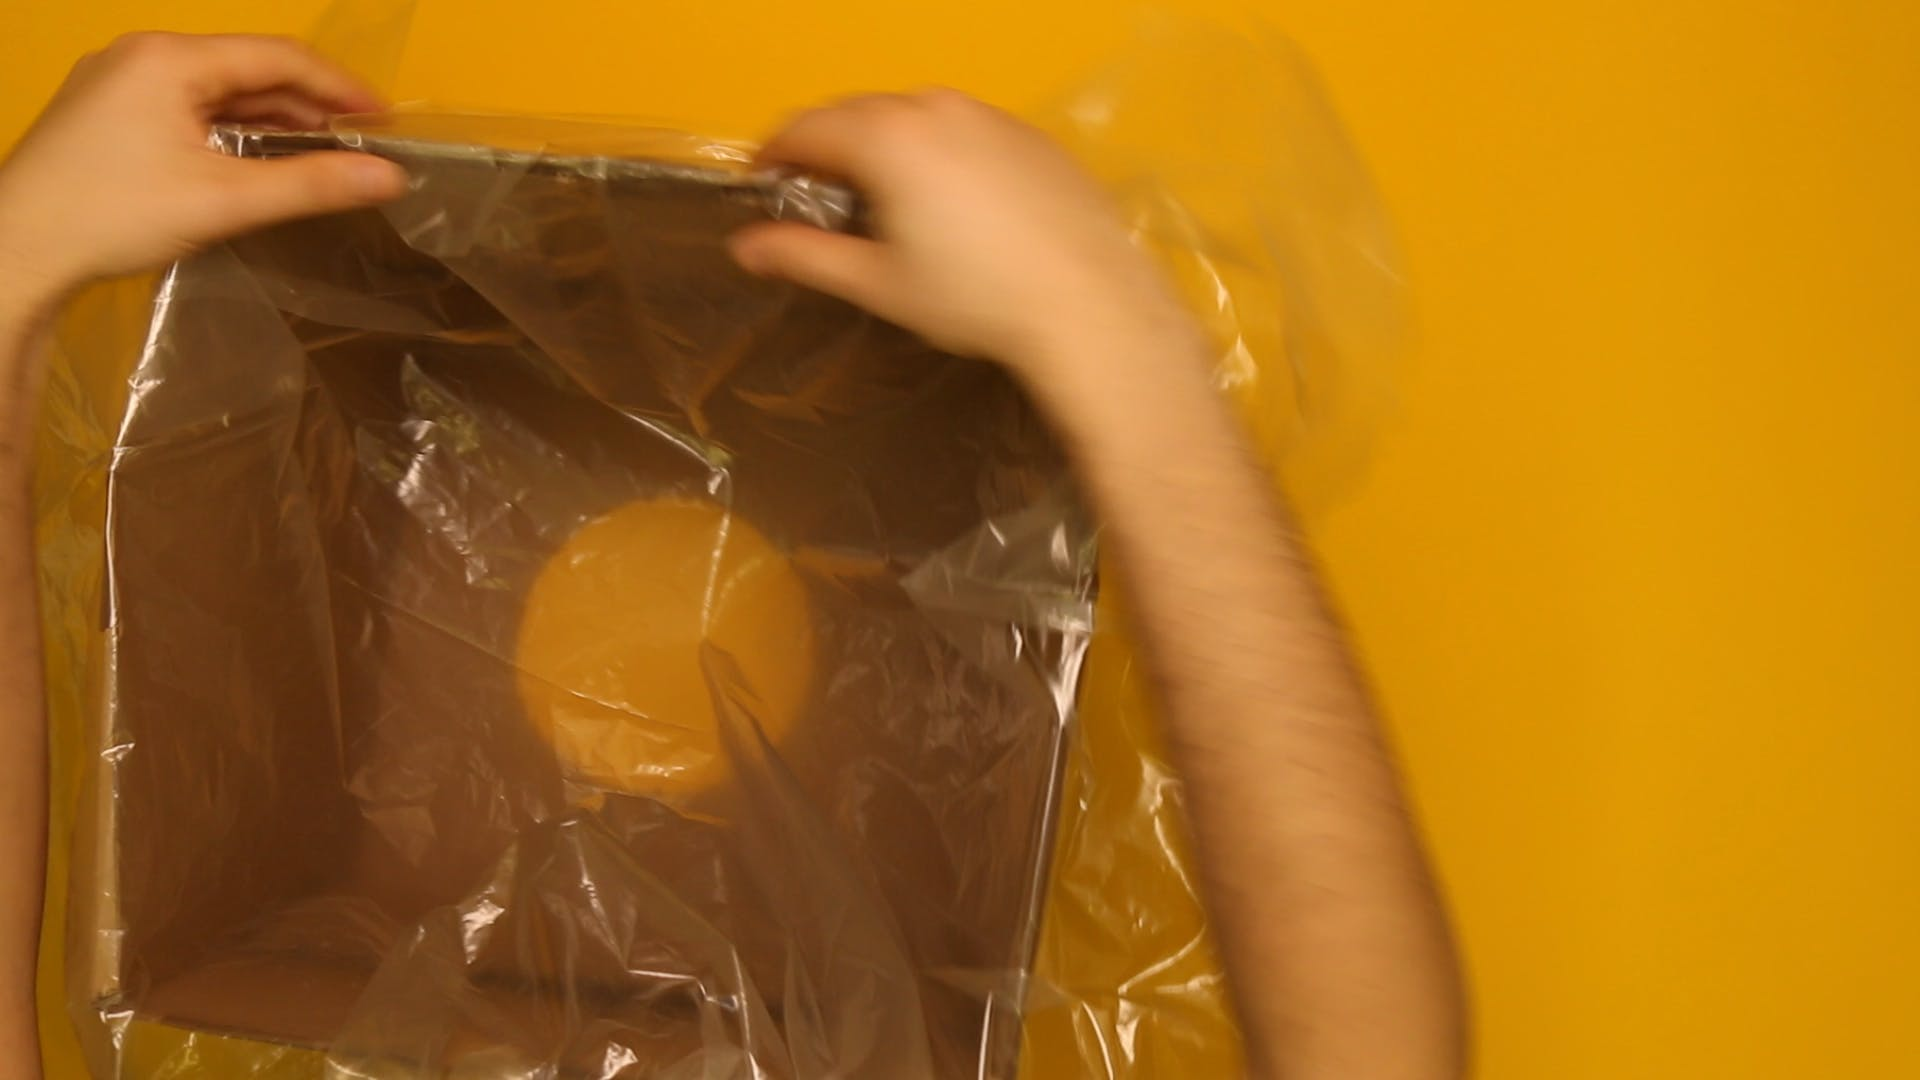 Place bag inside the box and tape it down so it's airtight